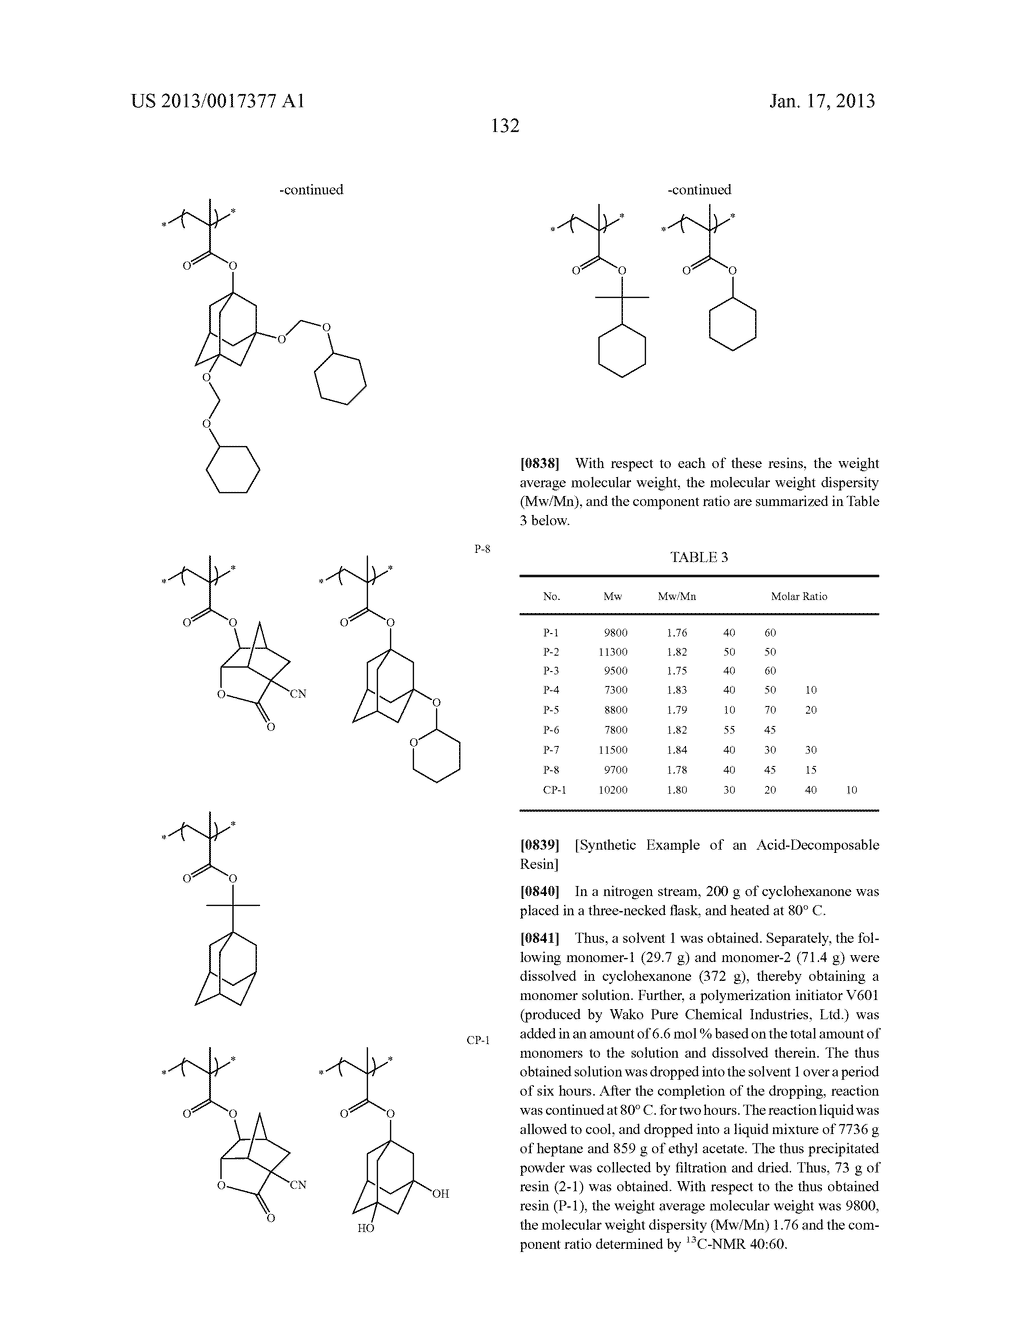 ACTINIC-RAY- OR RADIATION-SENSITIVE RESIN COMPOSITION AND METHOD OF     FORMING PATTERN USING THE SAMEAANM Kataoka; ShoheiAACI ShizuokaAACO JPAAGP Kataoka; Shohei Shizuoka JPAANM Iwato; KaoruAACI ShizuokaAACO JPAAGP Iwato; Kaoru Shizuoka JPAANM Kamimura; SouAACI ShizuokaAACO JPAAGP Kamimura; Sou Shizuoka JPAANM Tsuchihashi; ToruAACI ShizuokaAACO JPAAGP Tsuchihashi; Toru Shizuoka JPAANM Enomoto; YuichiroAACI ShizuokaAACO JPAAGP Enomoto; Yuichiro Shizuoka JPAANM Fujii; KanaAACI ShizuokaAACO JPAAGP Fujii; Kana Shizuoka JPAANM Mizutani; KazuyoshiAACI ShizuokaAACO JPAAGP Mizutani; Kazuyoshi Shizuoka JPAANM Tarutani; ShinjiAACI ShizuokaAACO JPAAGP Tarutani; Shinji Shizuoka JPAANM Kato; KeitaAACI ShizuokaAACO JPAAGP Kato; Keita Shizuoka JP - diagram, schematic, and image 133